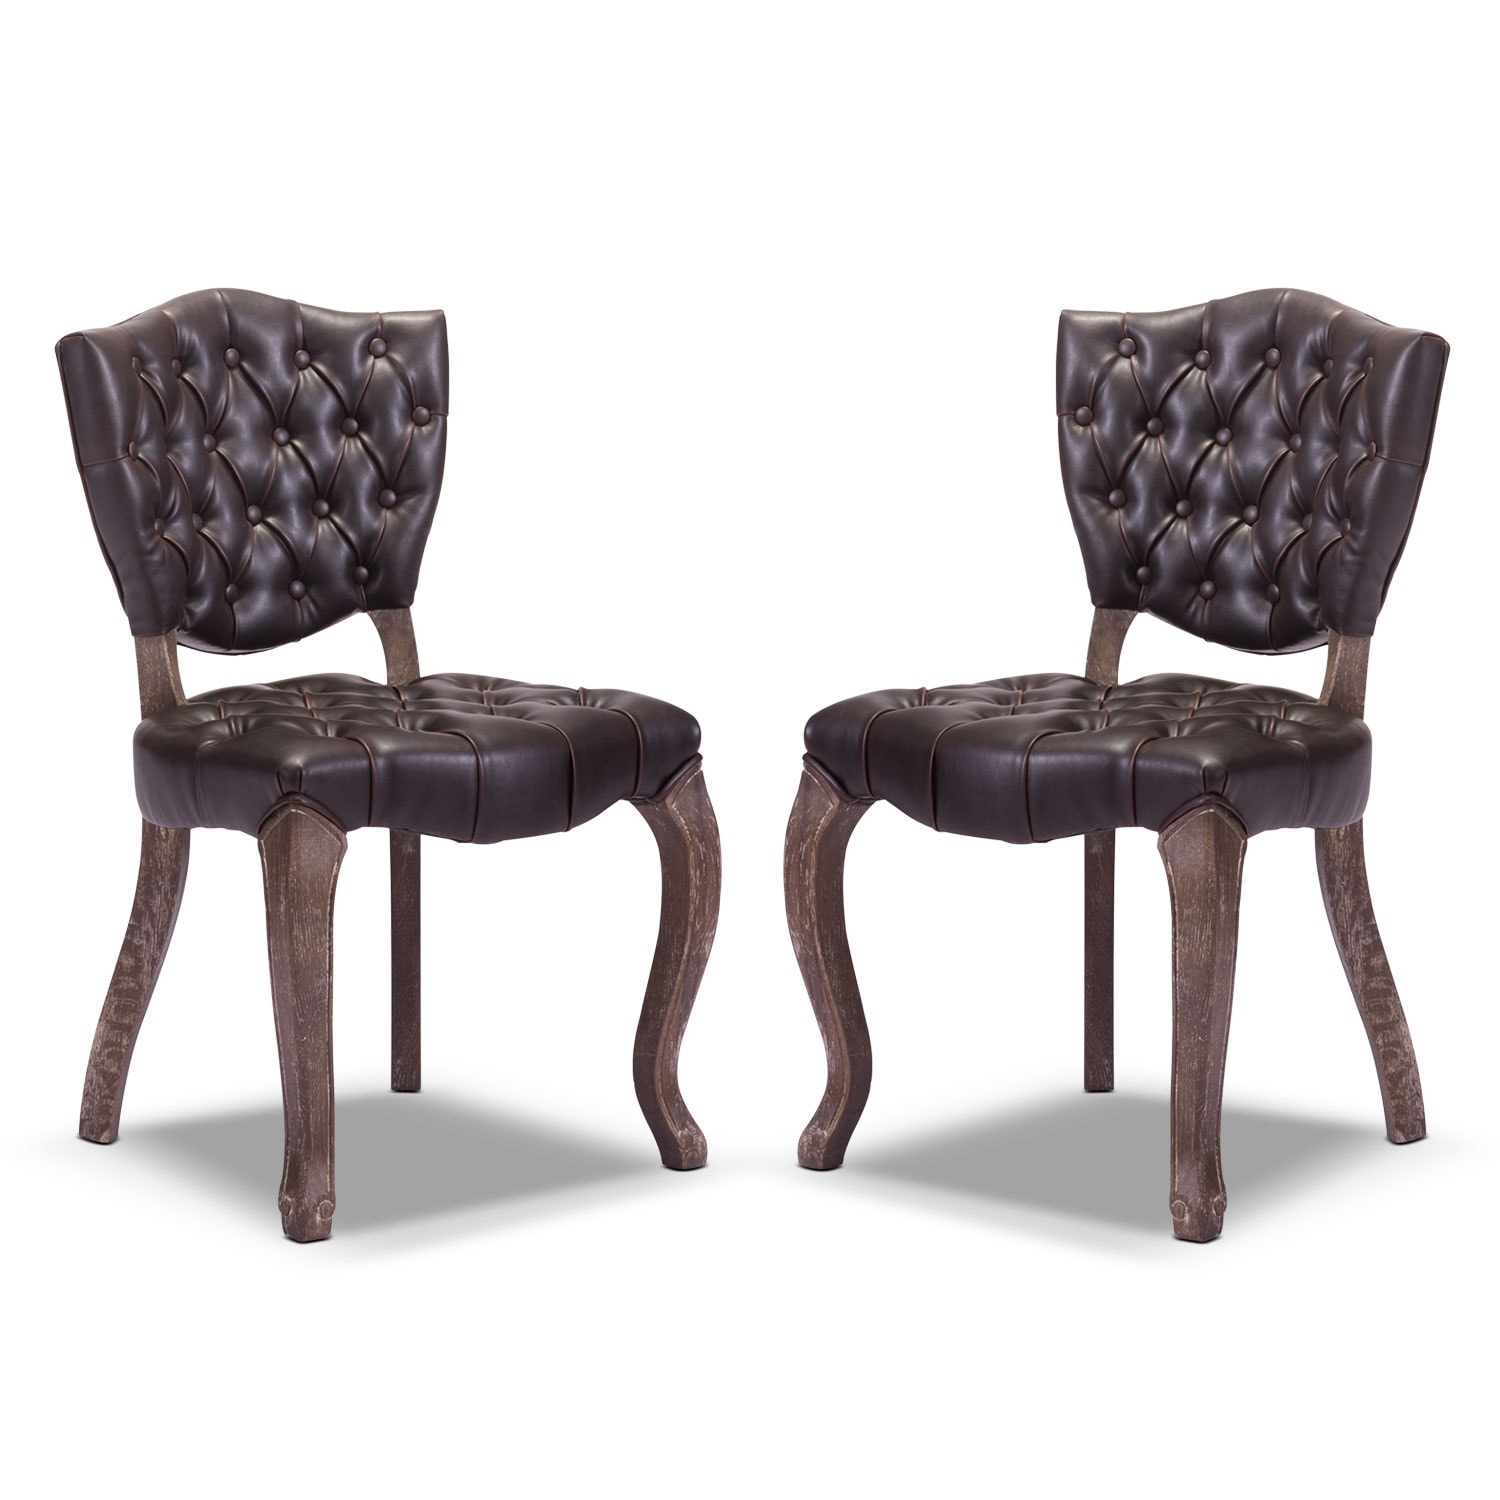 Accent and Occasional Furniture - Shield 2-Pack Chairs